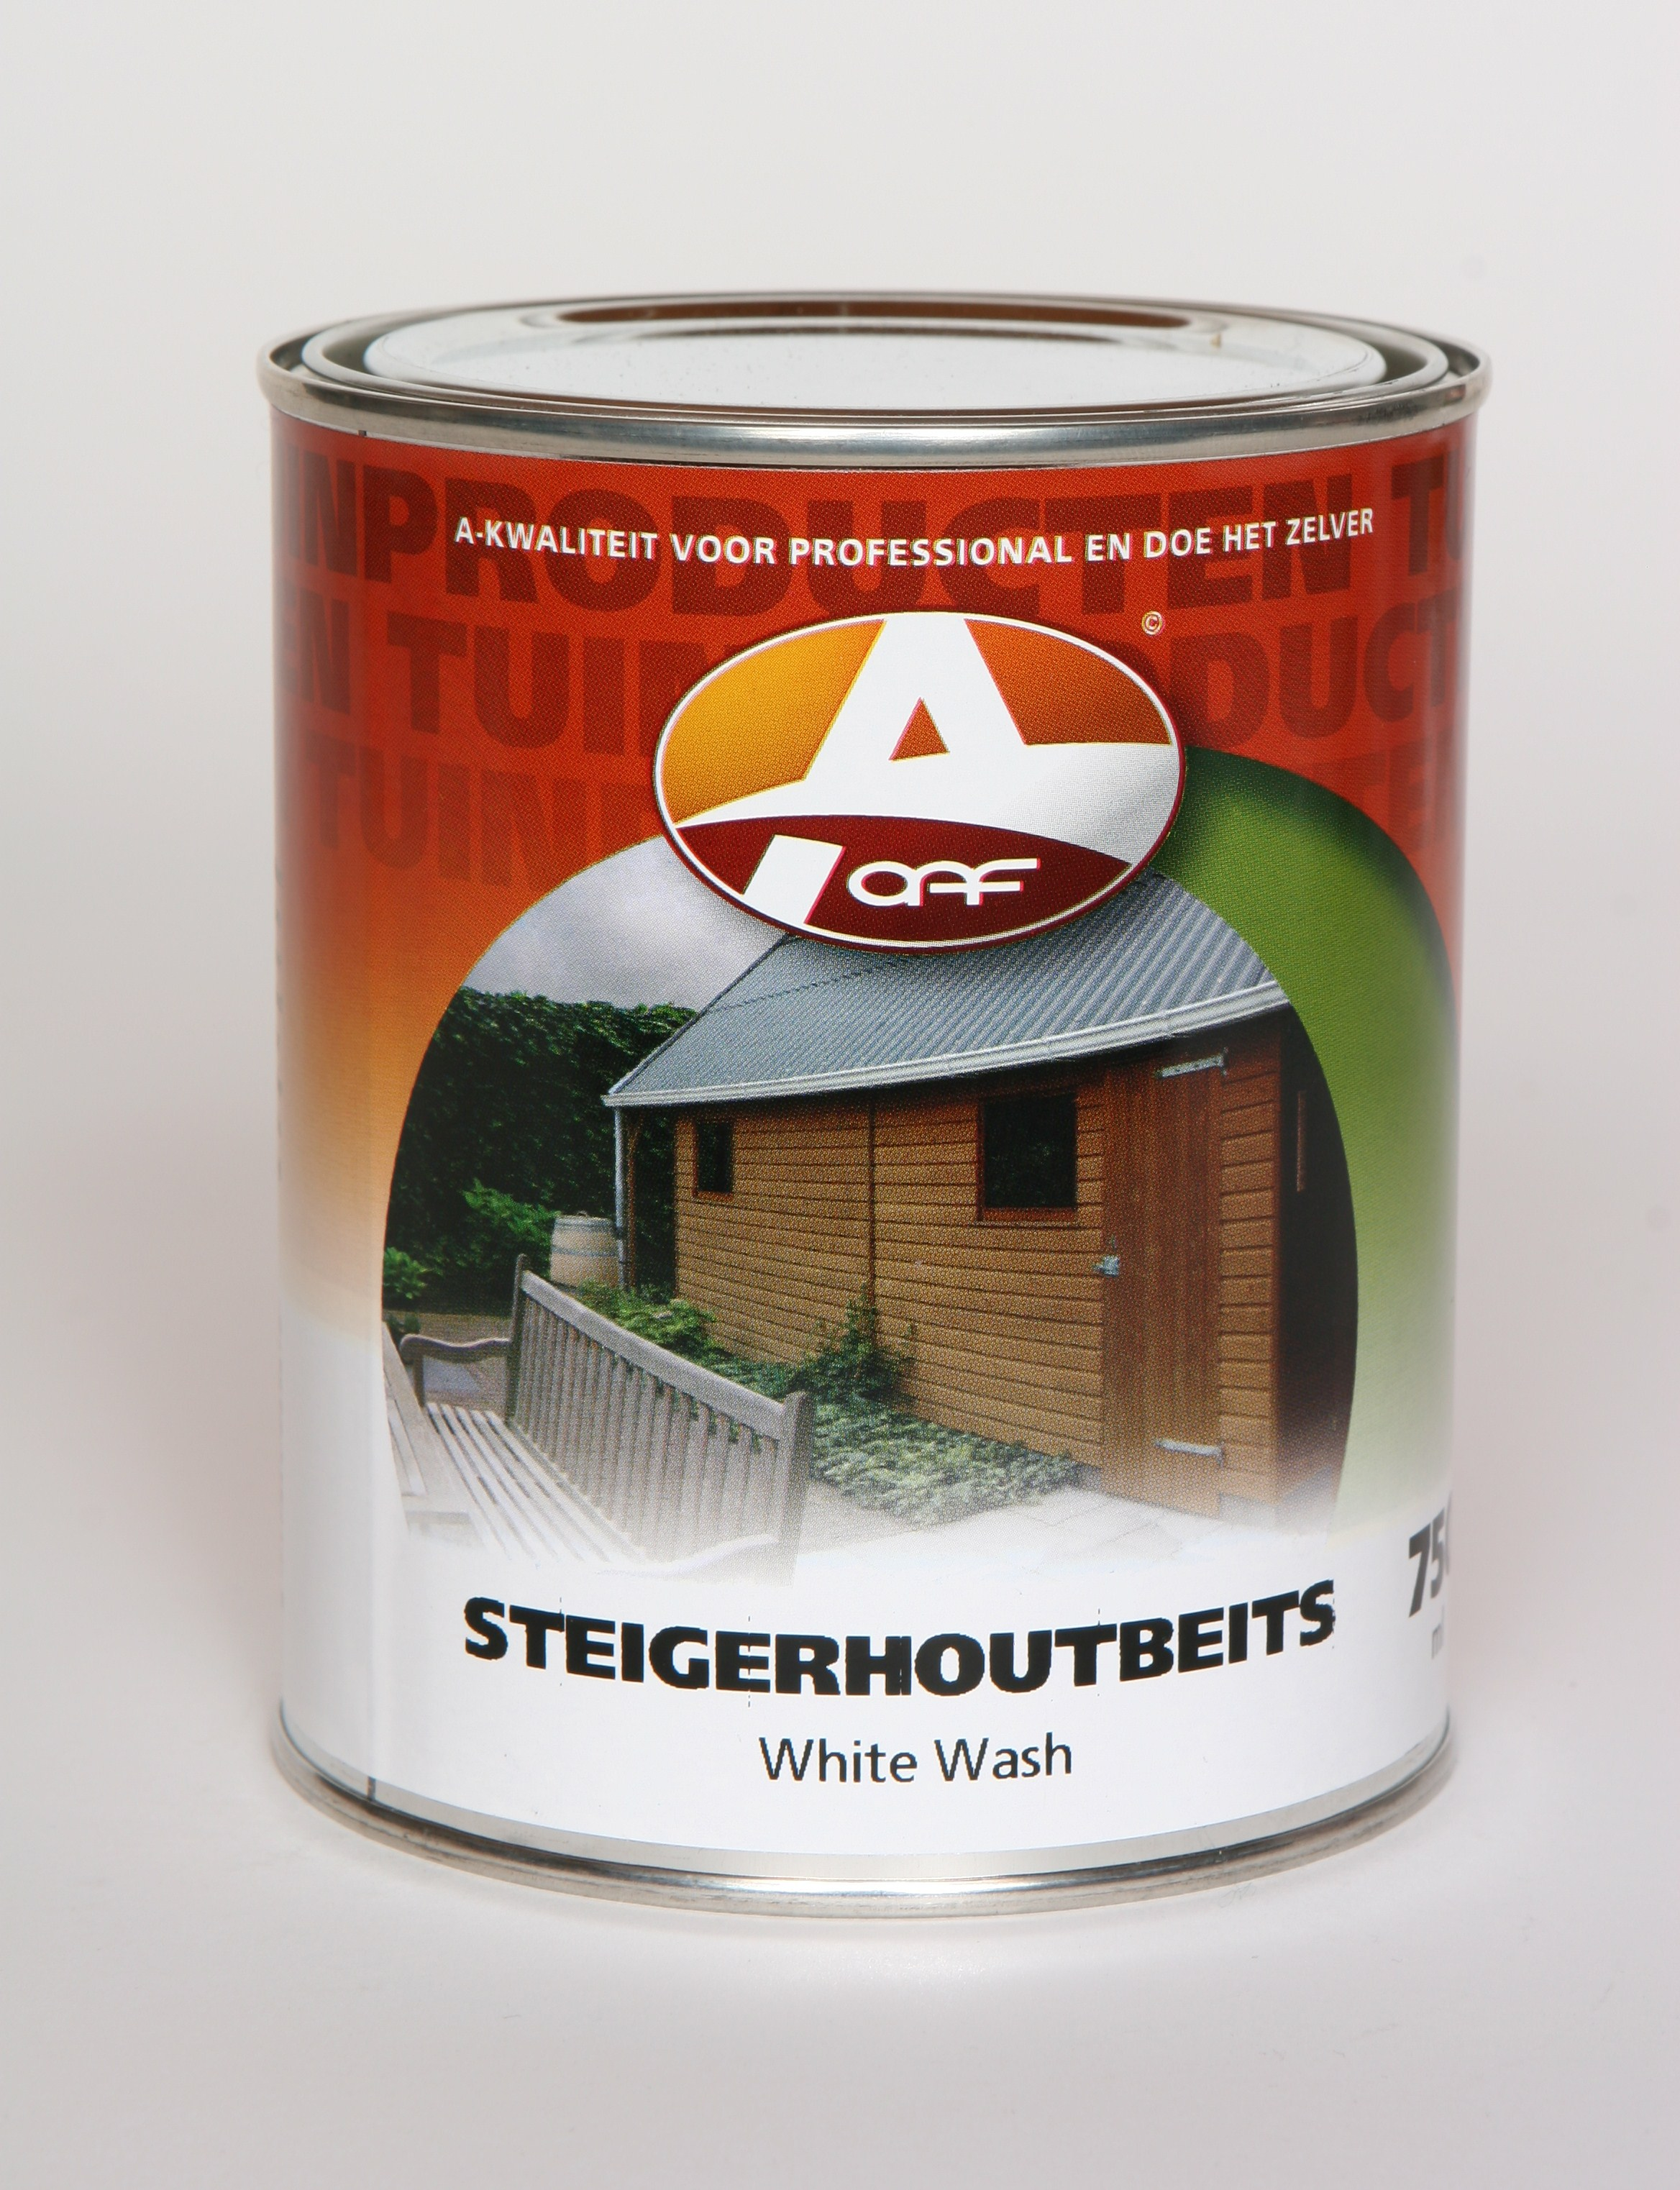 Steigerhout White Wash Beits White Wash Beits Great White Wash Beits With White Wash